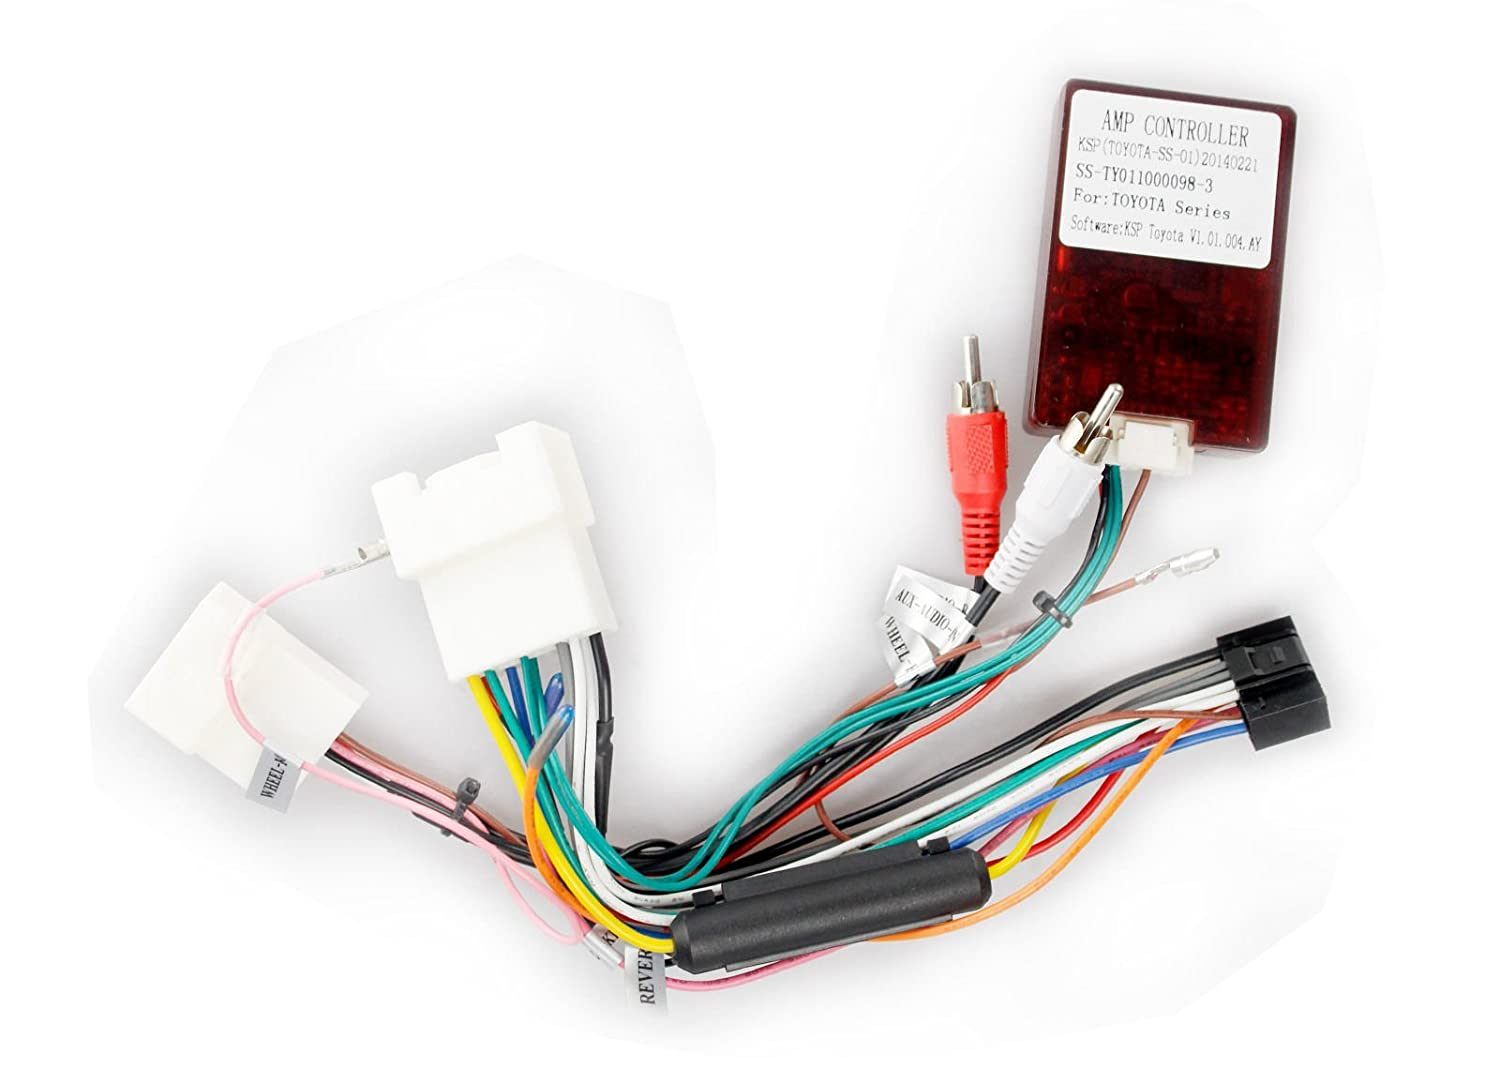 61fZW4TmG1L._SL1500_ amazon com jbl adapter harness for car stereo in toyota camry jbl wire harness toyota sienna 2005 at couponss.co